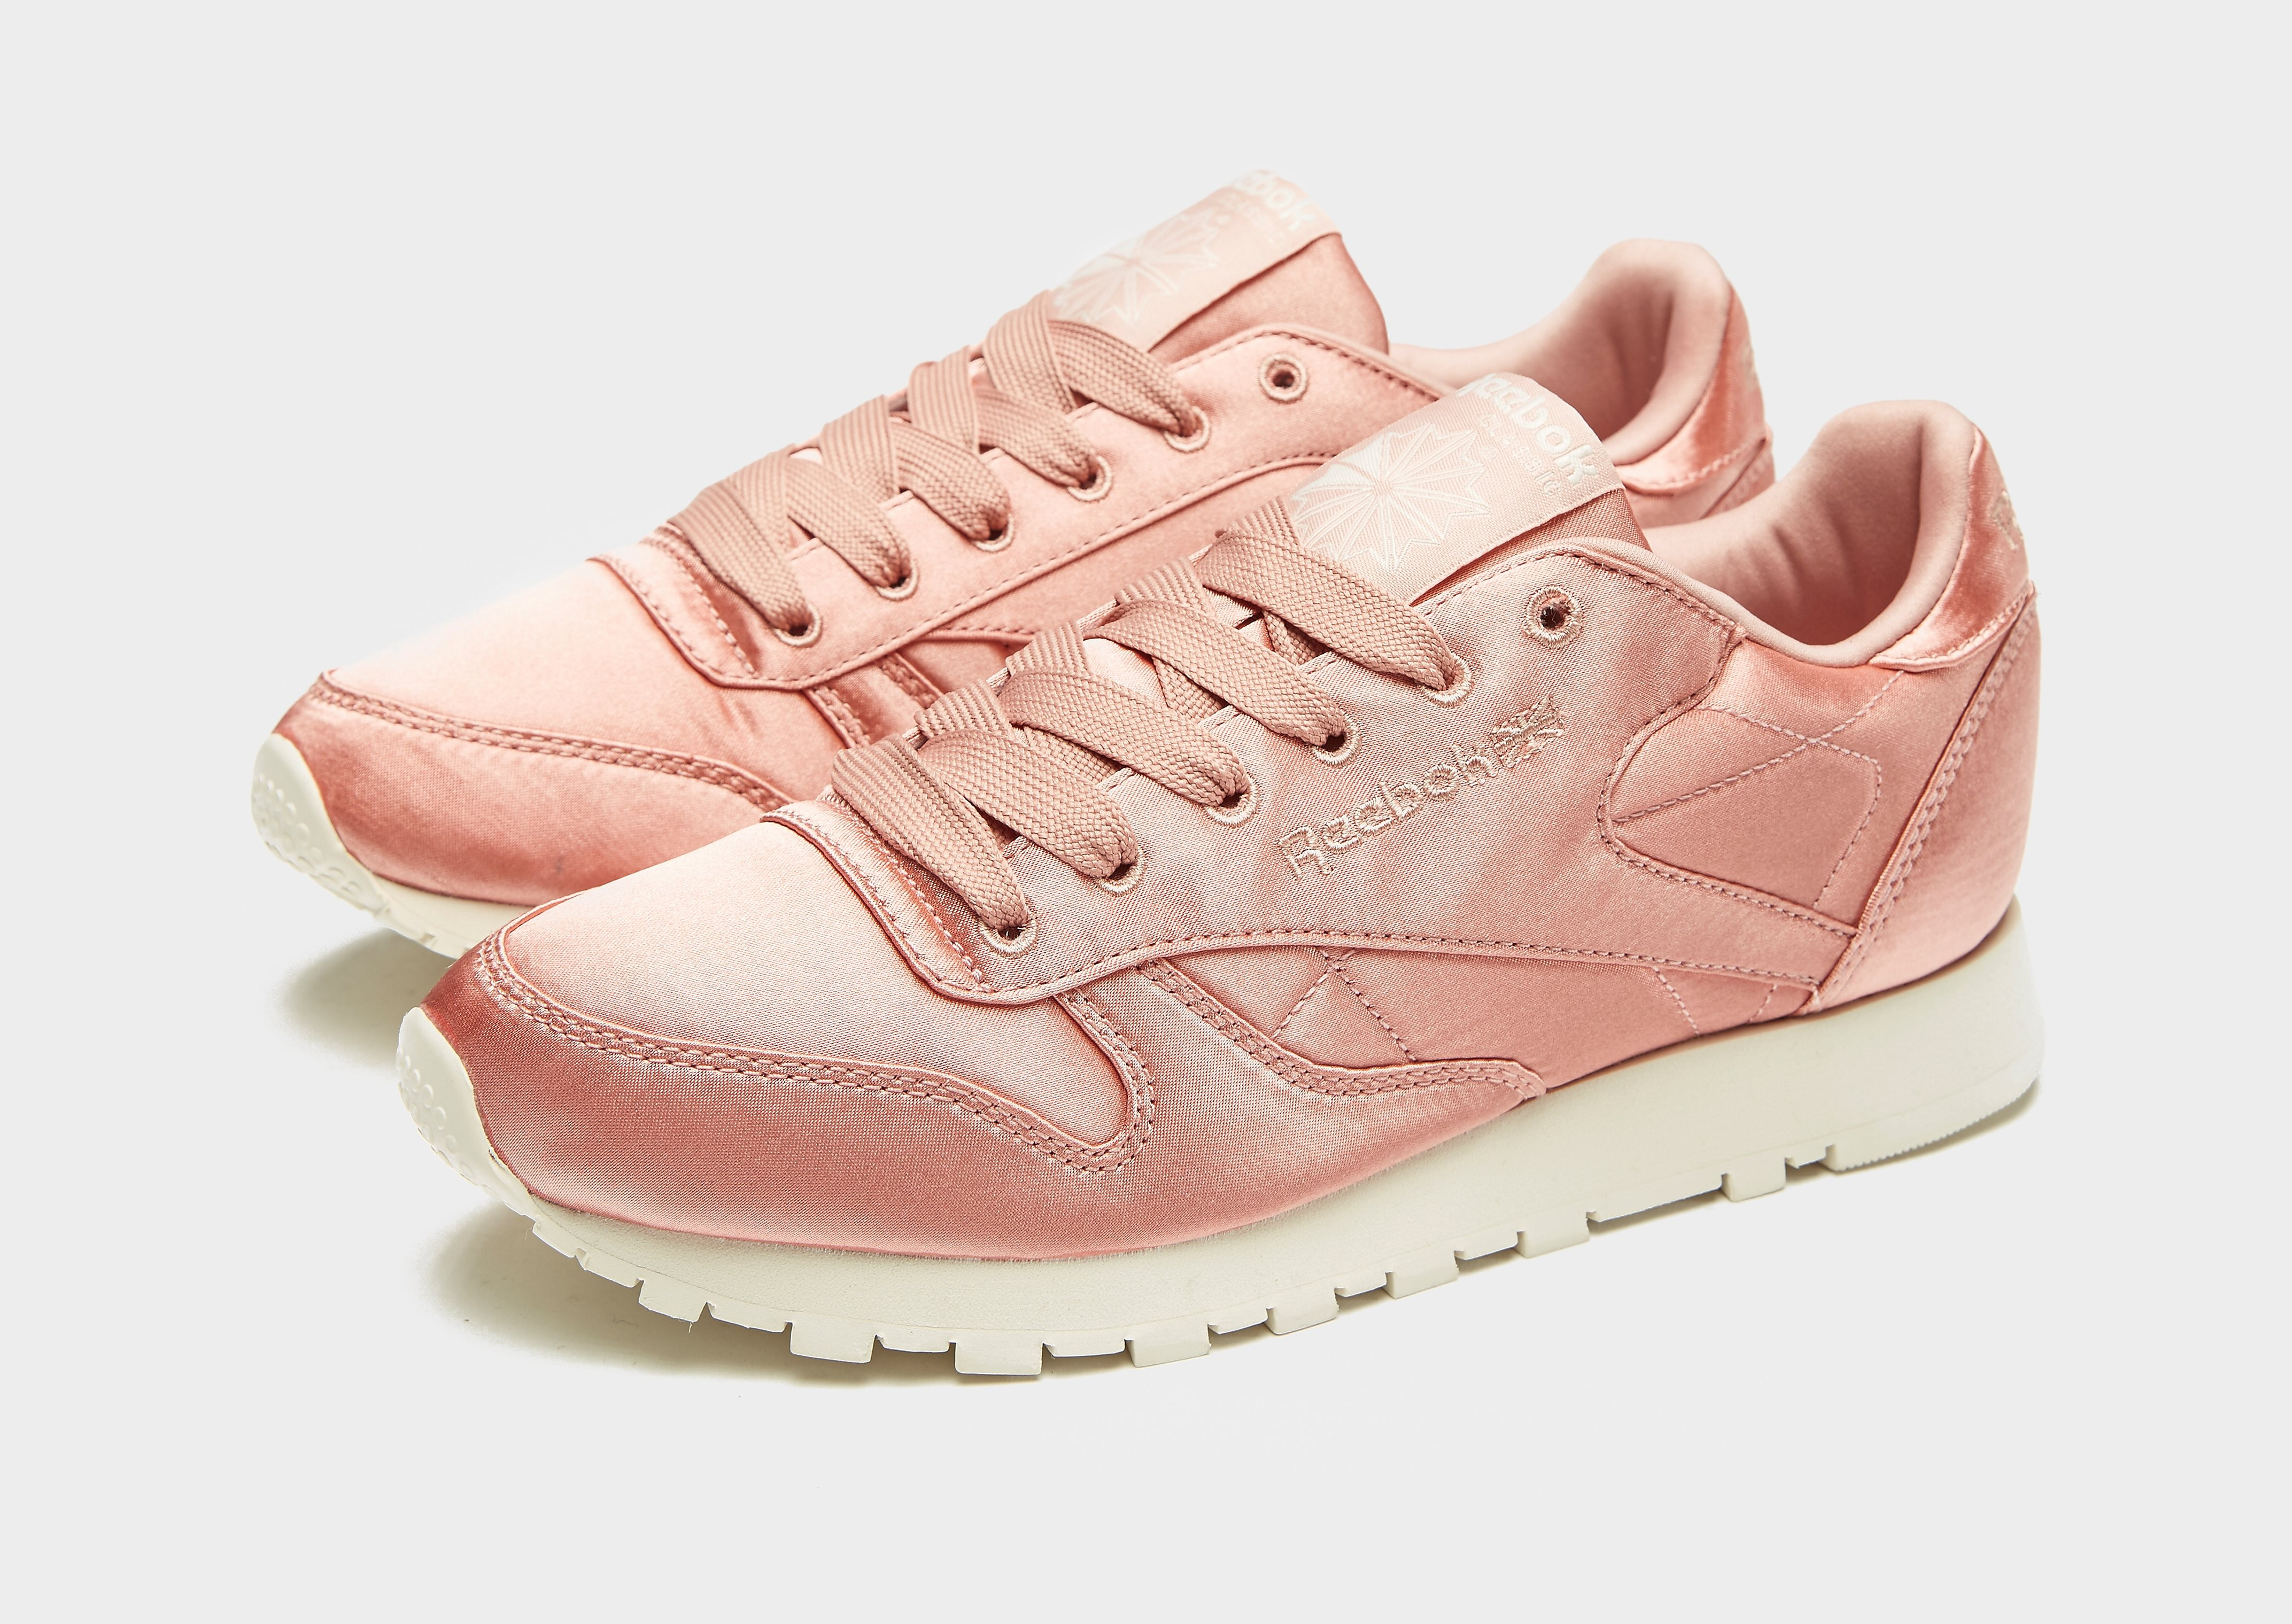 Reebok Classic Leather Satin Femme